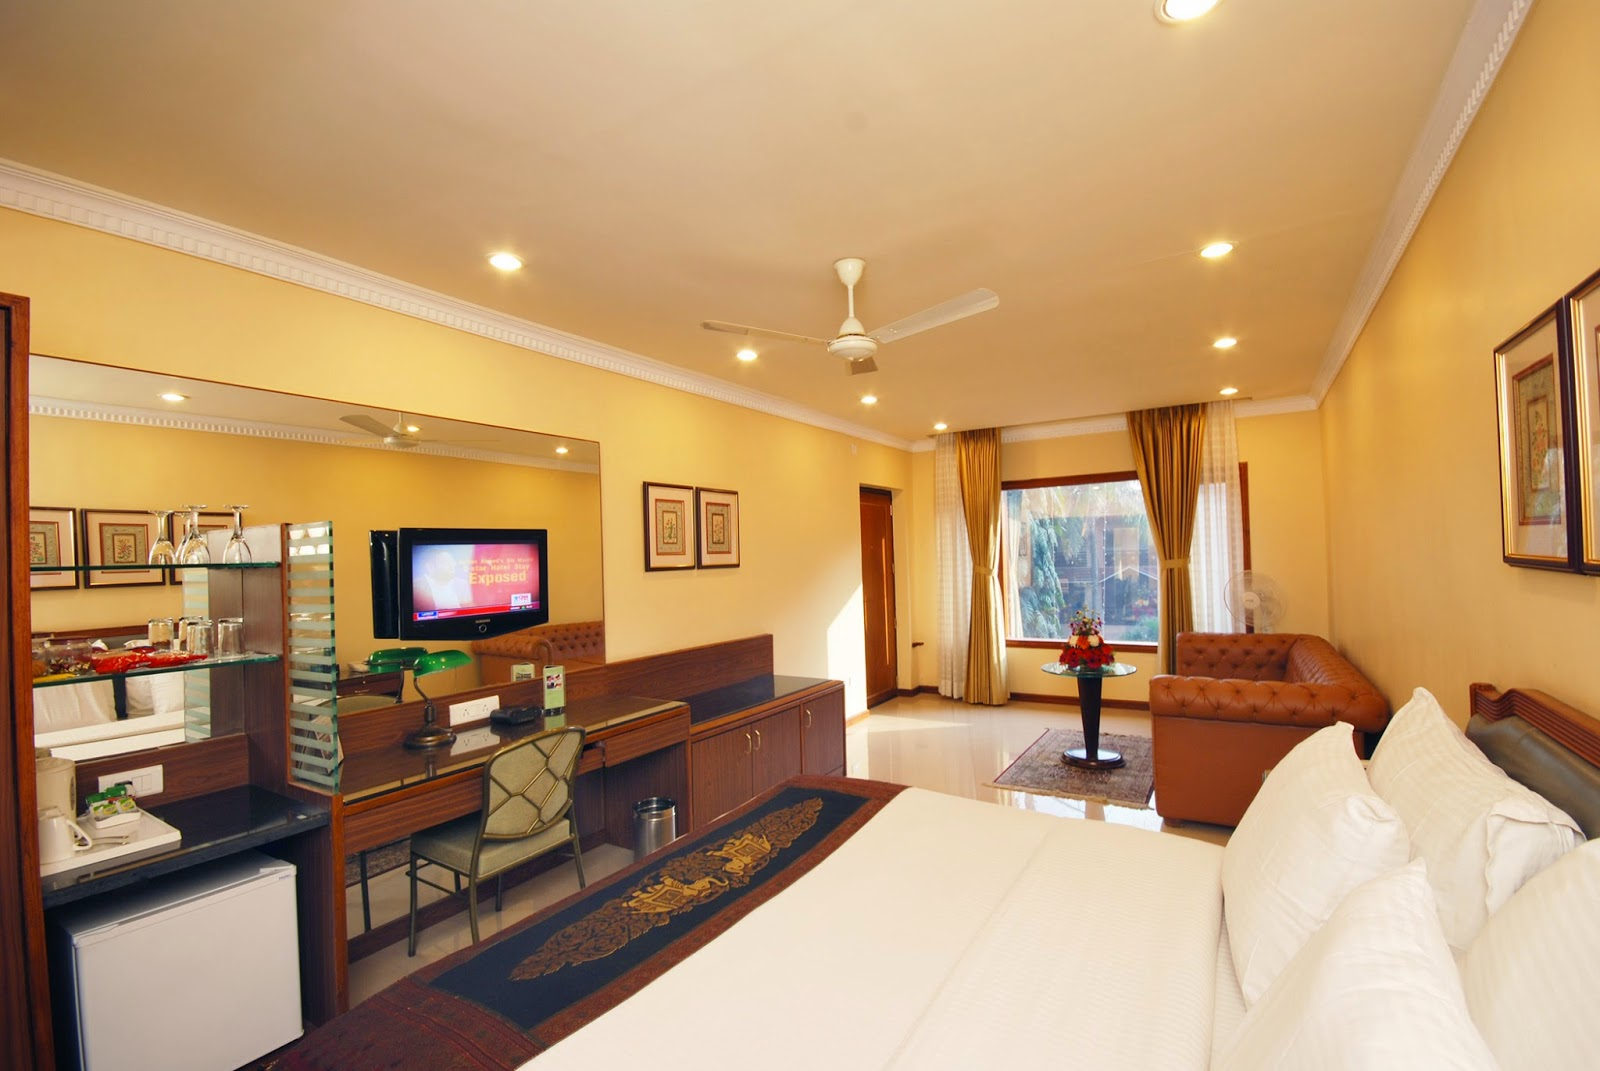 Mayfair Hotel and Resort, Rourkela